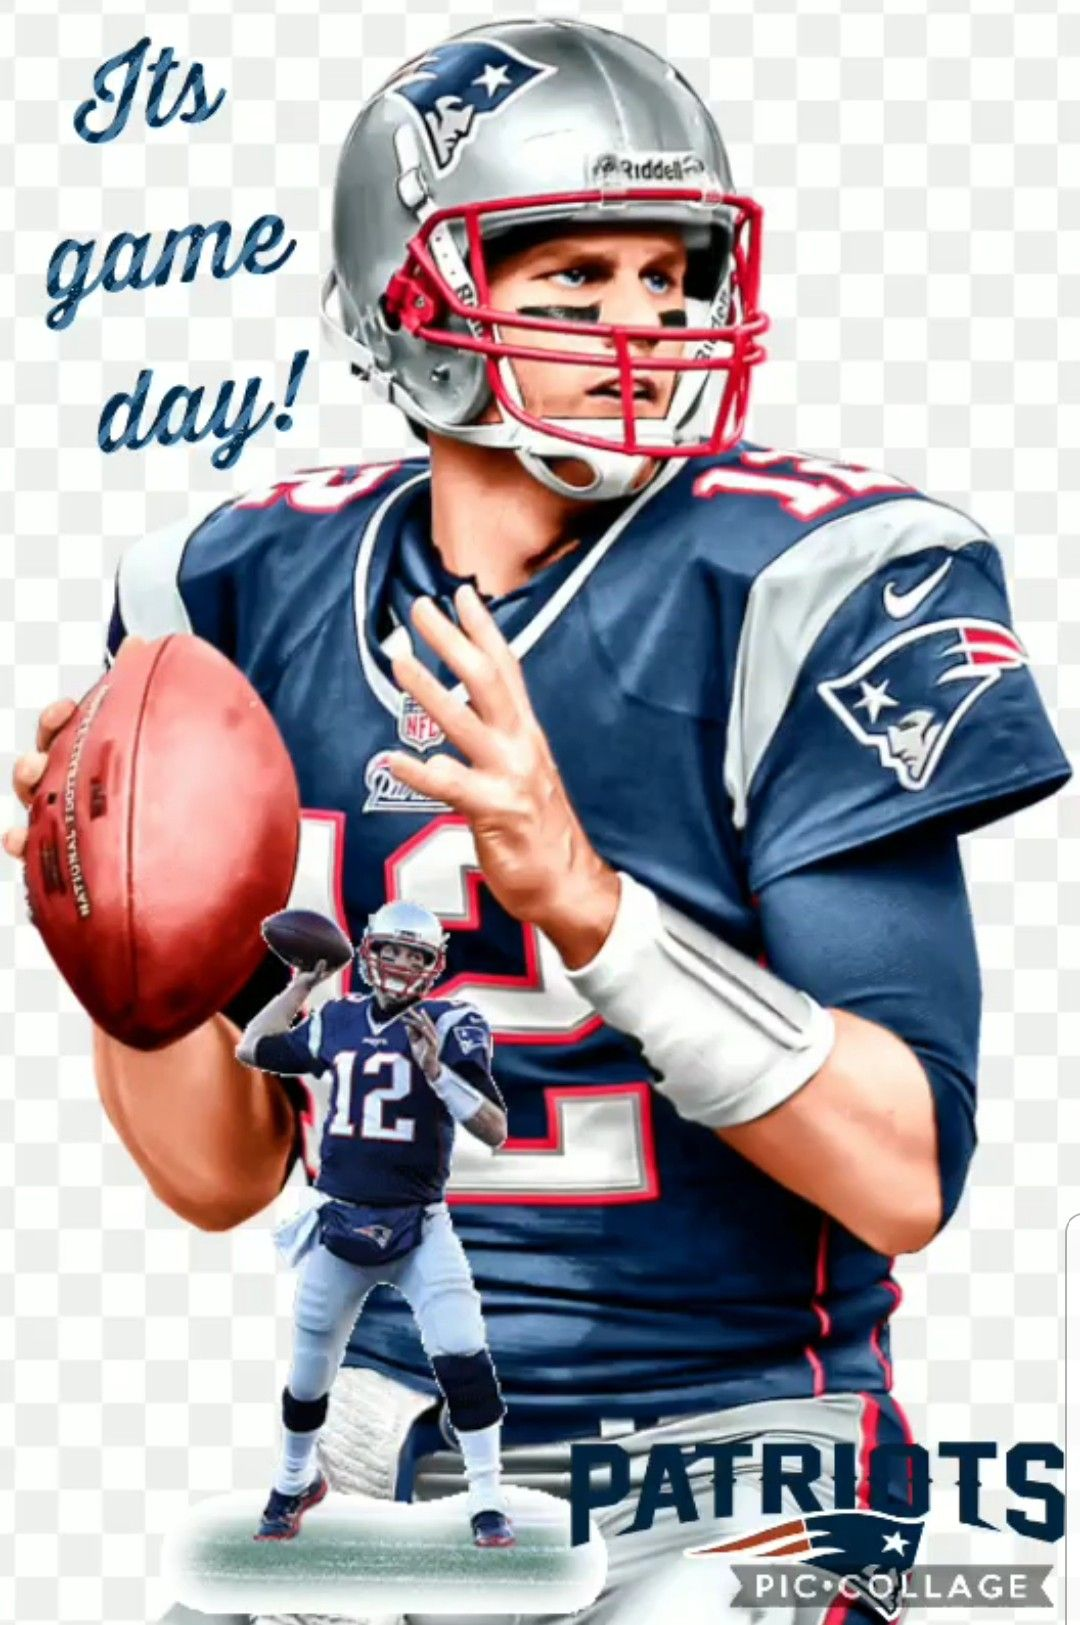 Pin By Susan Sweeney On Sports Patriots New England Patriots Cheerleading Pictures